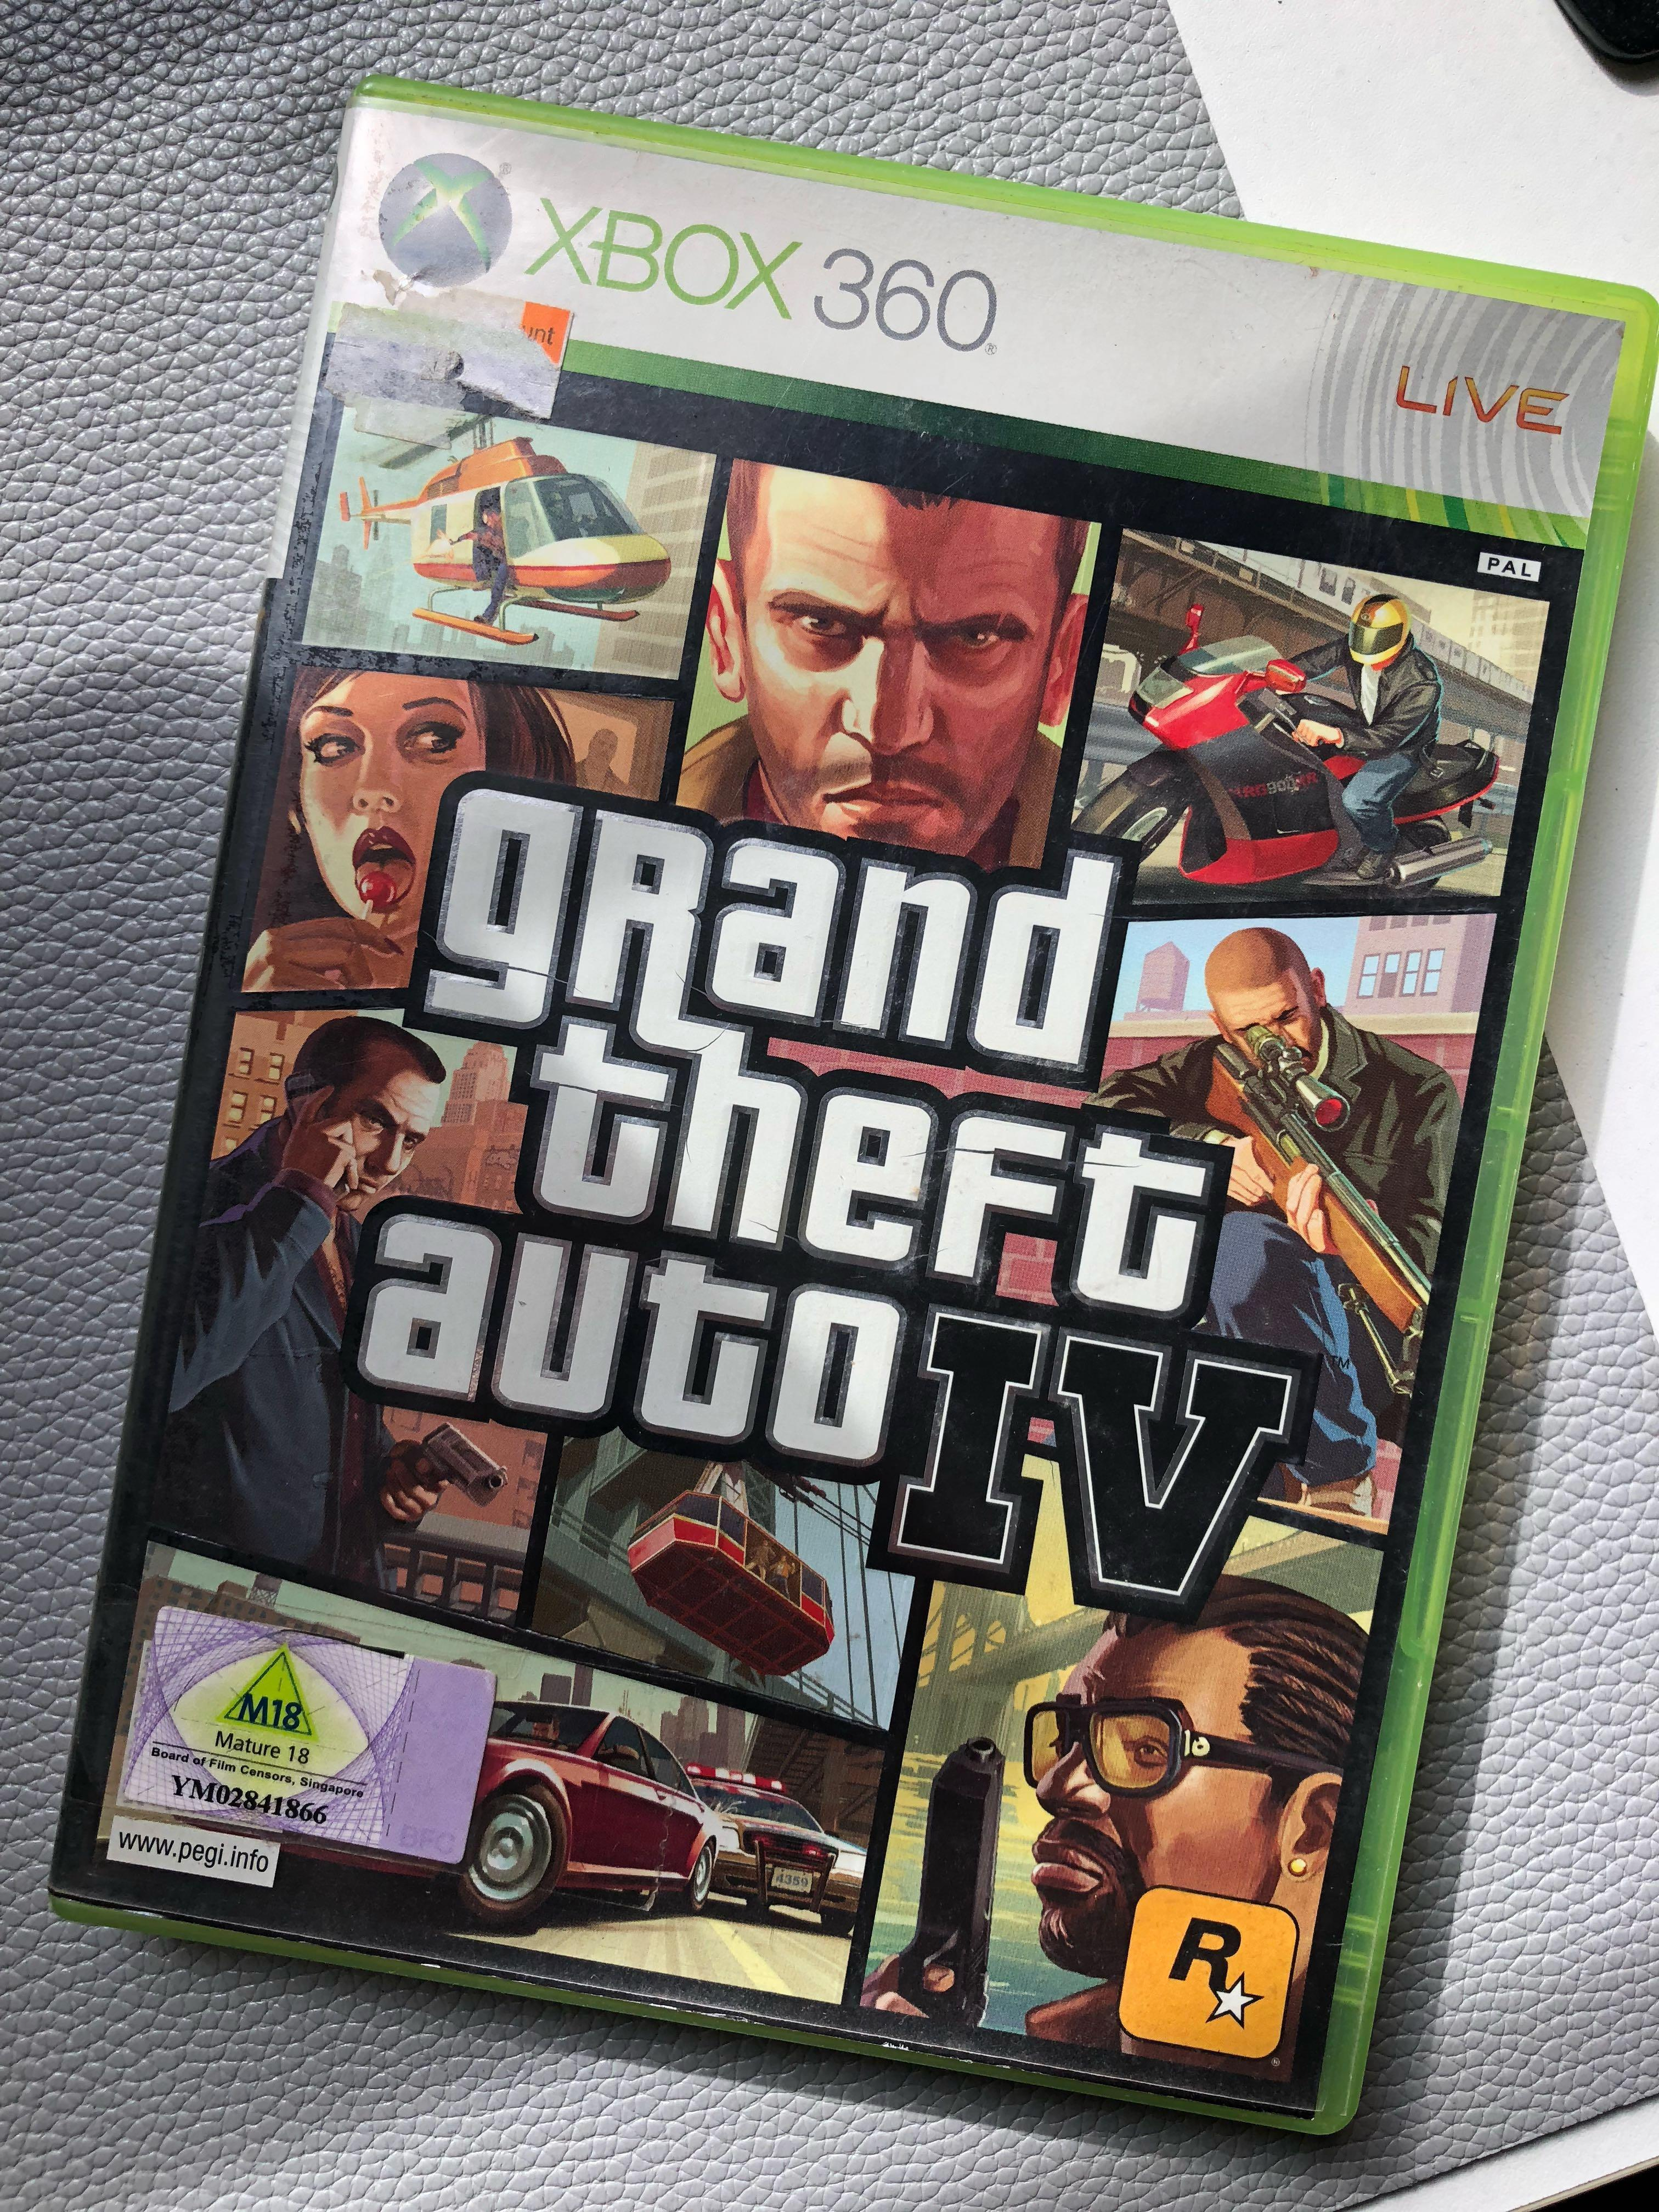 GRAND THEFT AUTO 4 GTA IV for XBOX 360 on Carousell